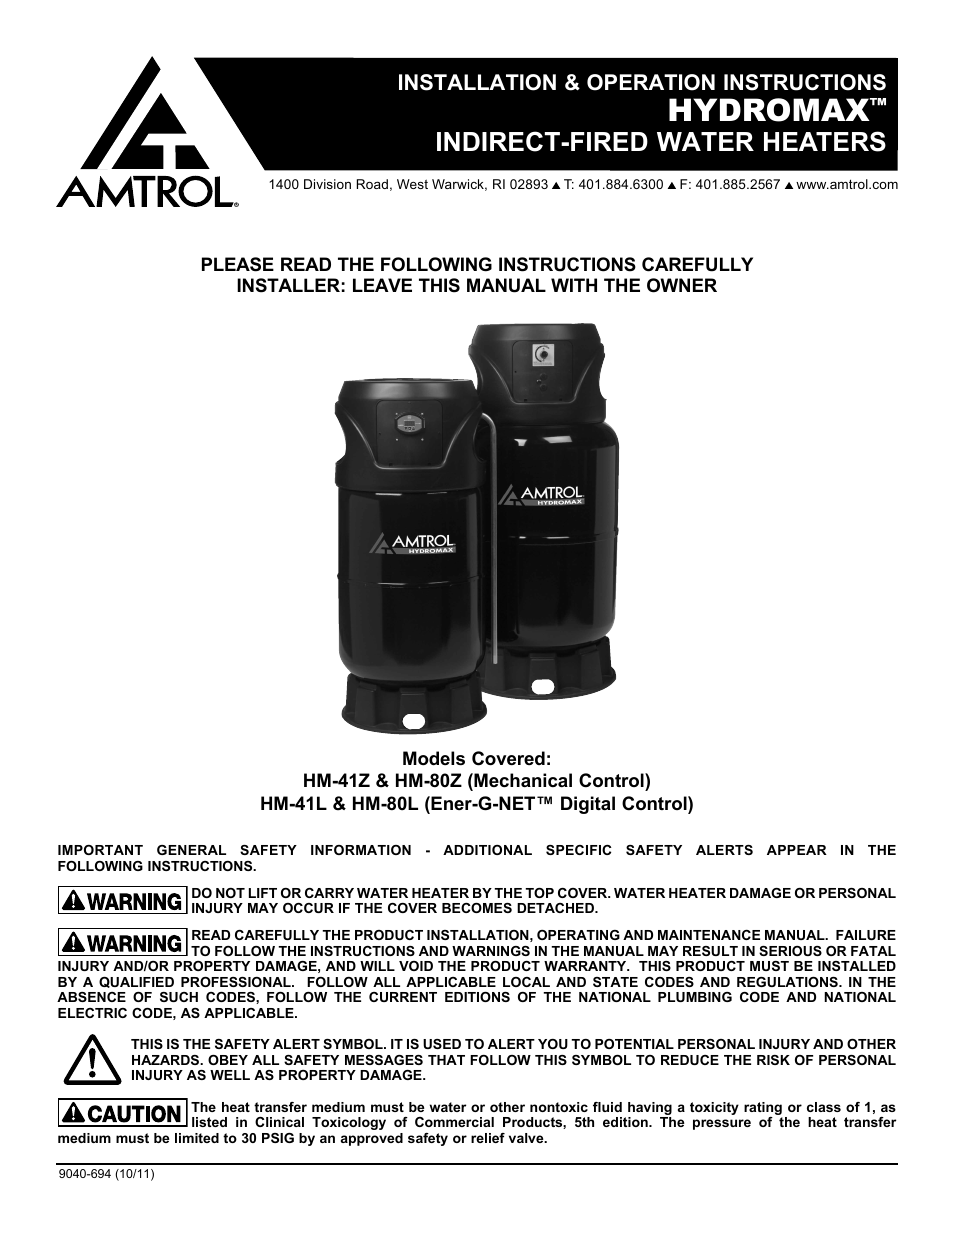 Amtrol HYDROMAX HM-41L User Manual | 12 pages | Also for